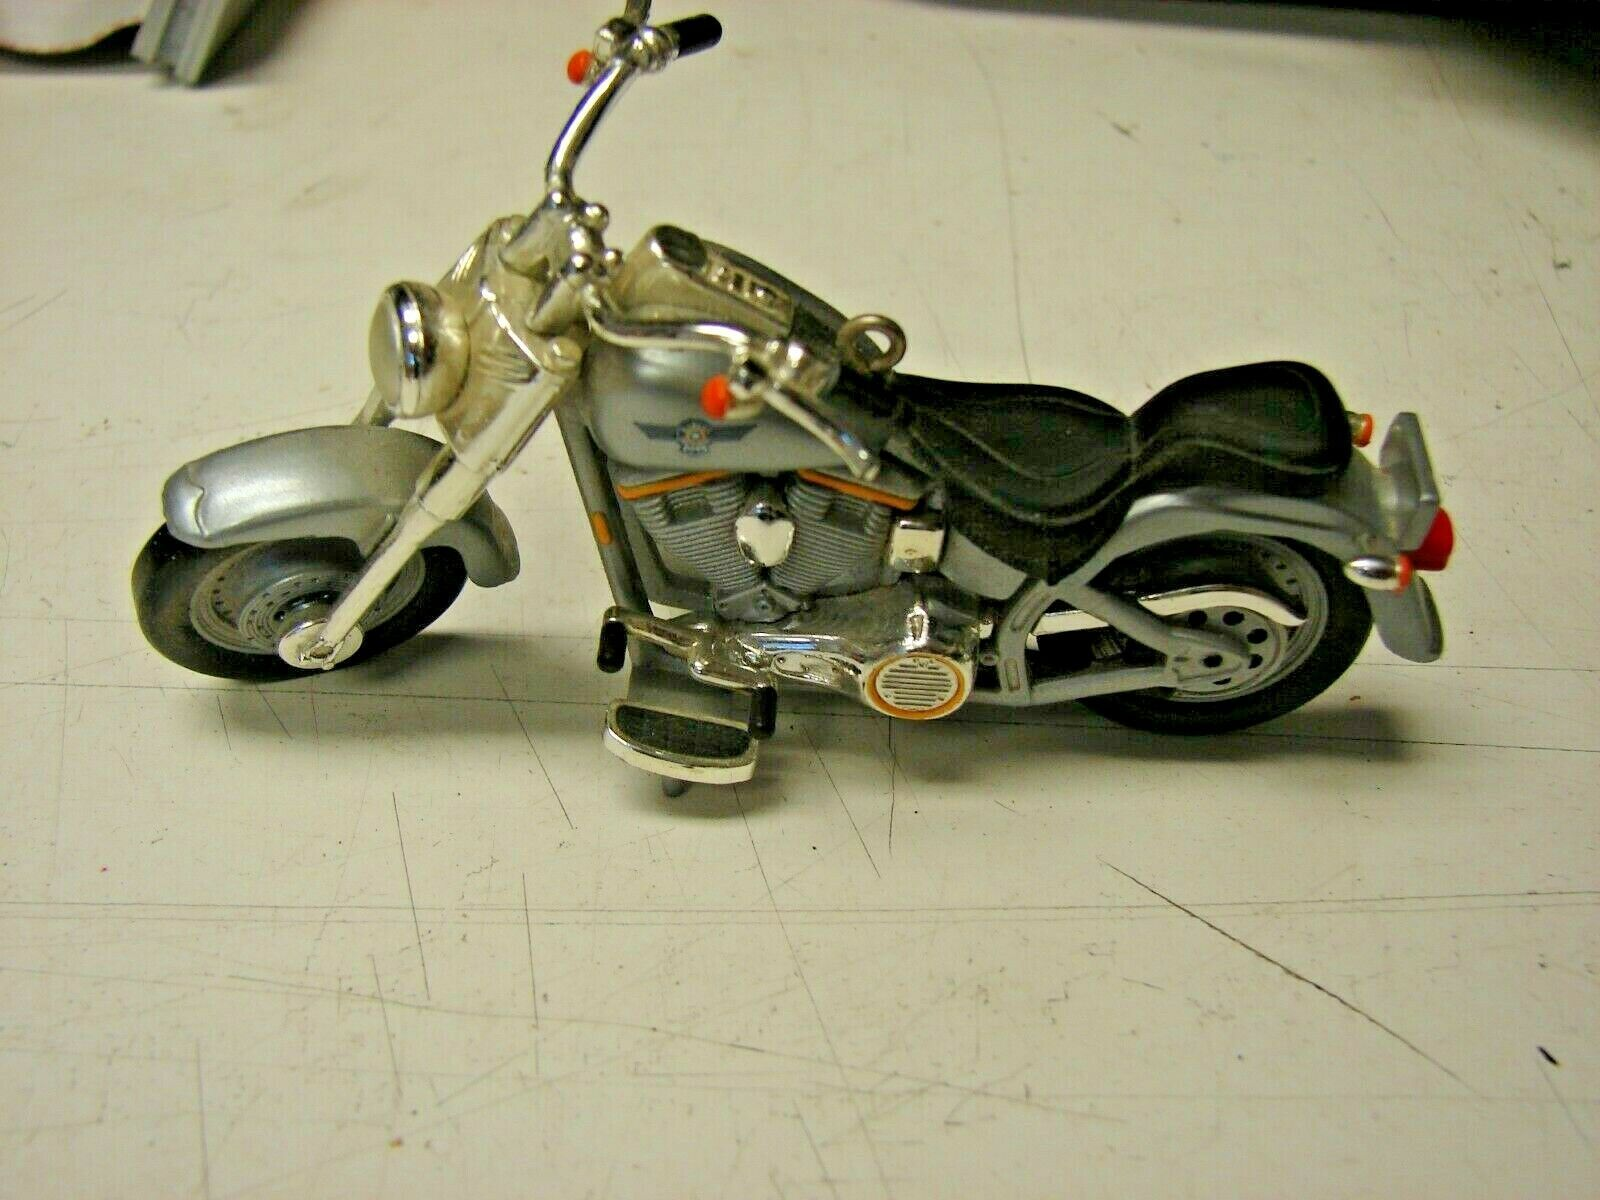 Harley-Davidson FLSTF FATBOY 1990 Motorcycle Model 4 inches long